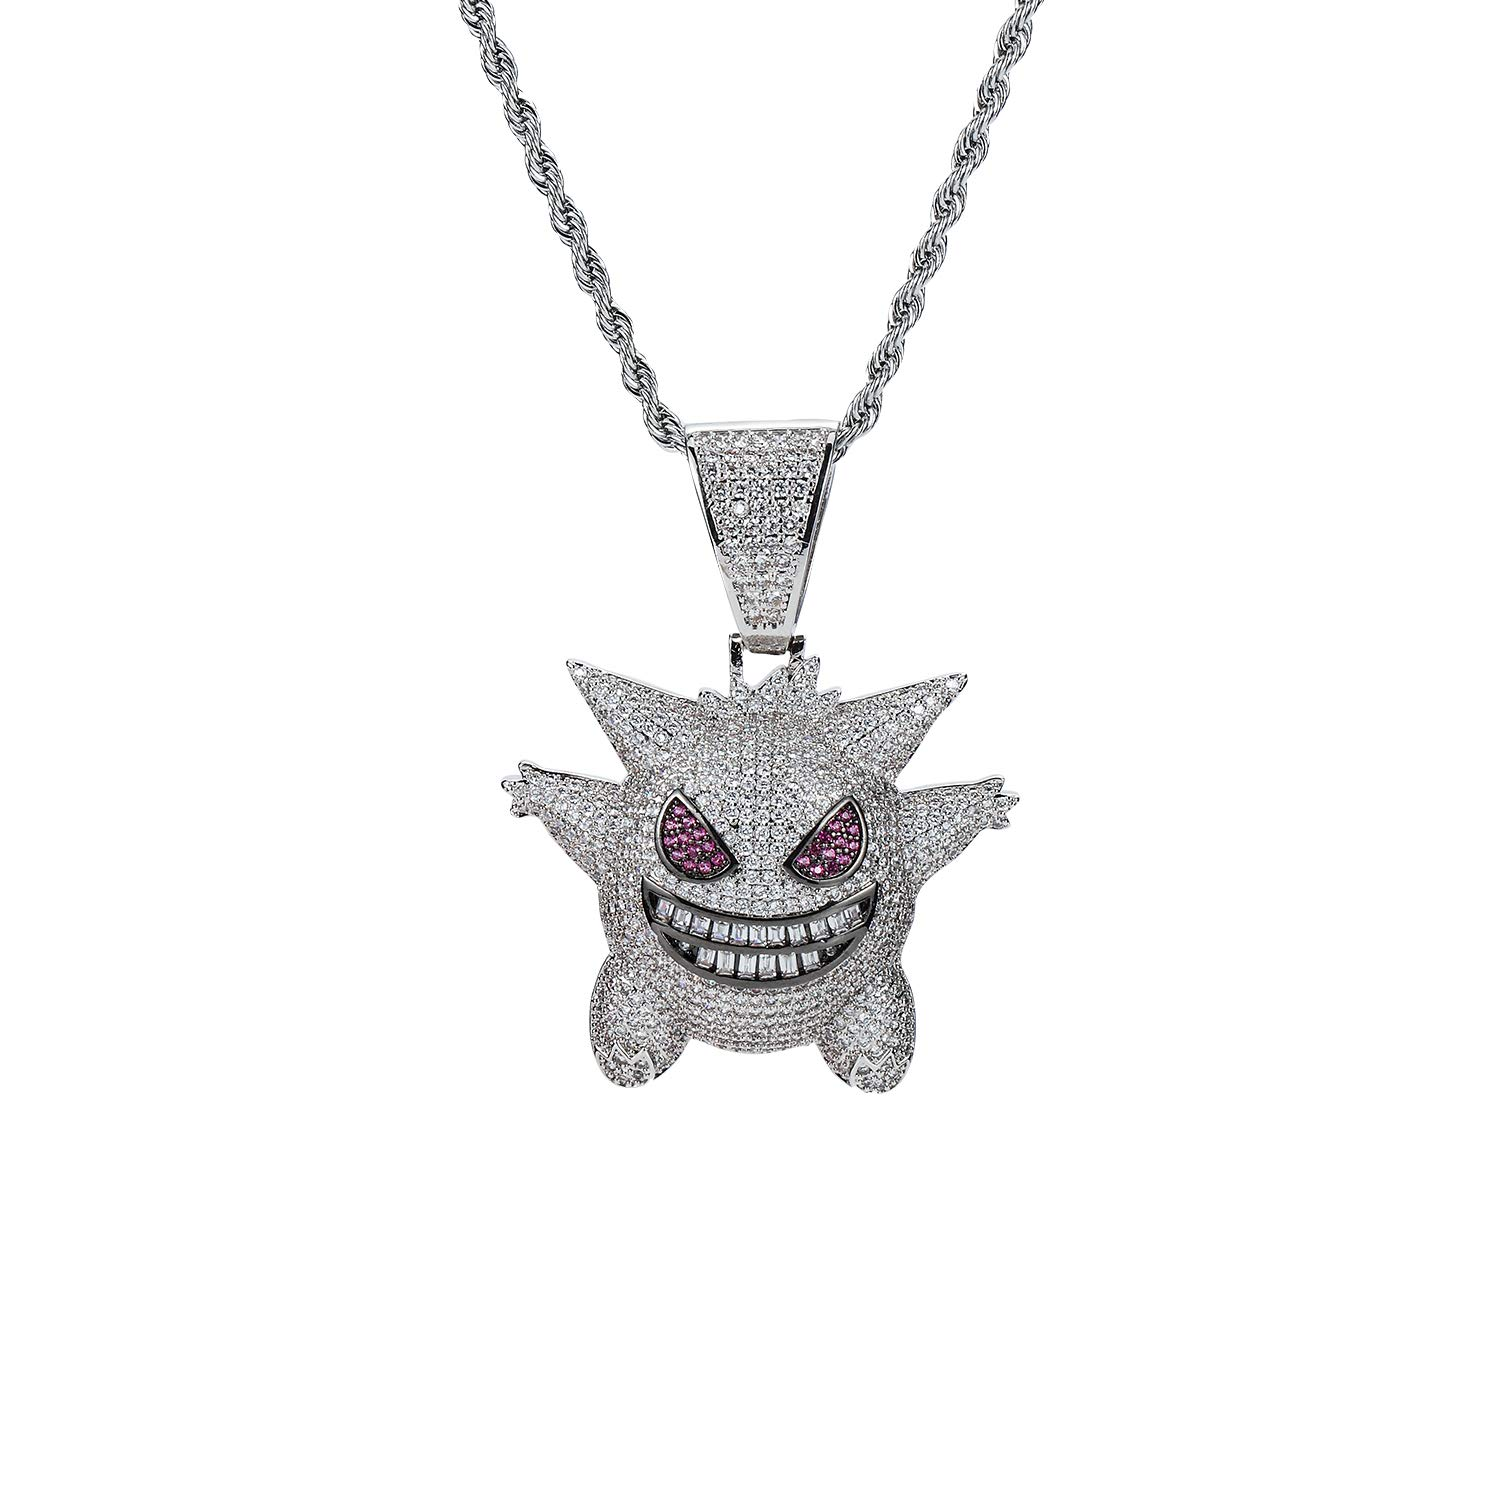 MTCLFTOO Hip Hop Gengar Pendant Jewelry Unisex Iced Out Necklace with Rope Chain+Mala Beads Bracelet Gift for Men Women-(Silver)